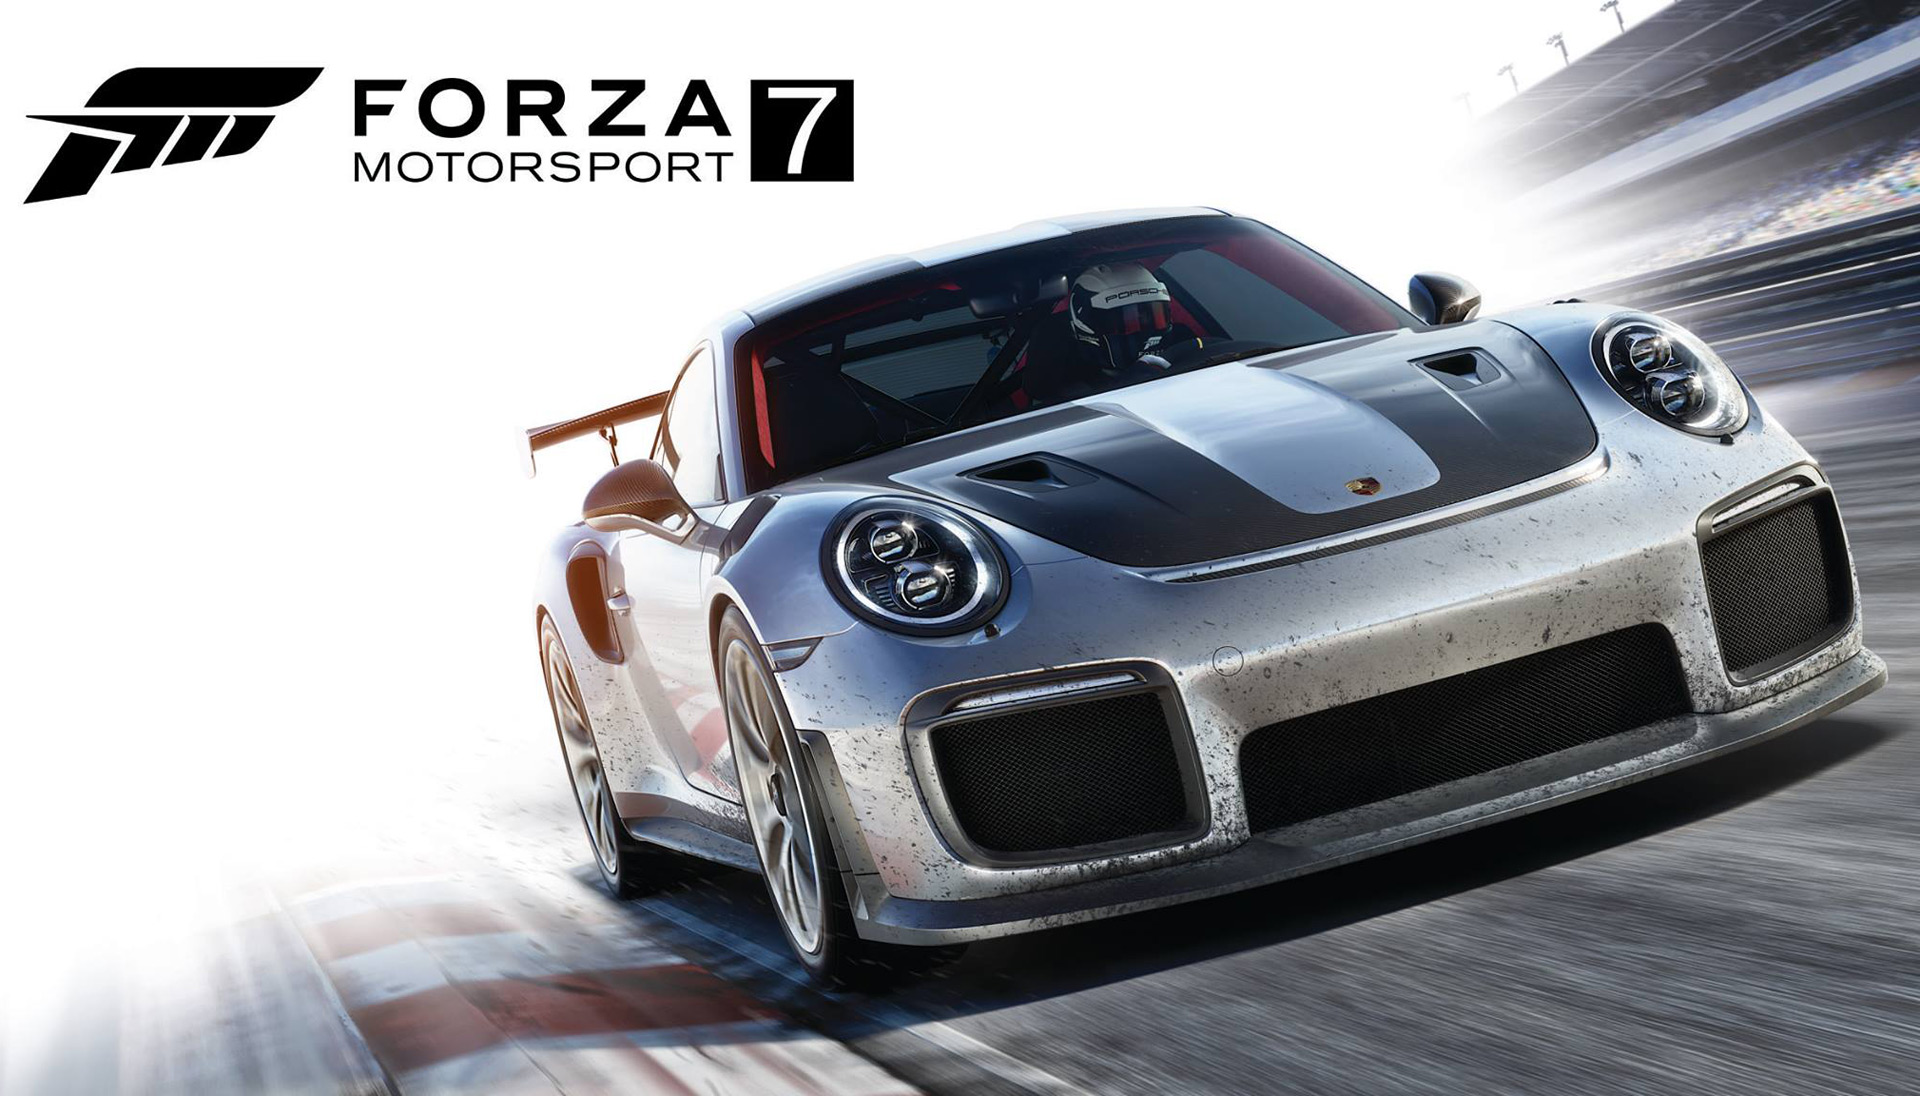 2018-porsche-911-gt2-rs-on-the-cover-of-forza-motorsport-7_100609564_h Extraordinary Porsche 911 Gt2 Rs Used Cars Trend